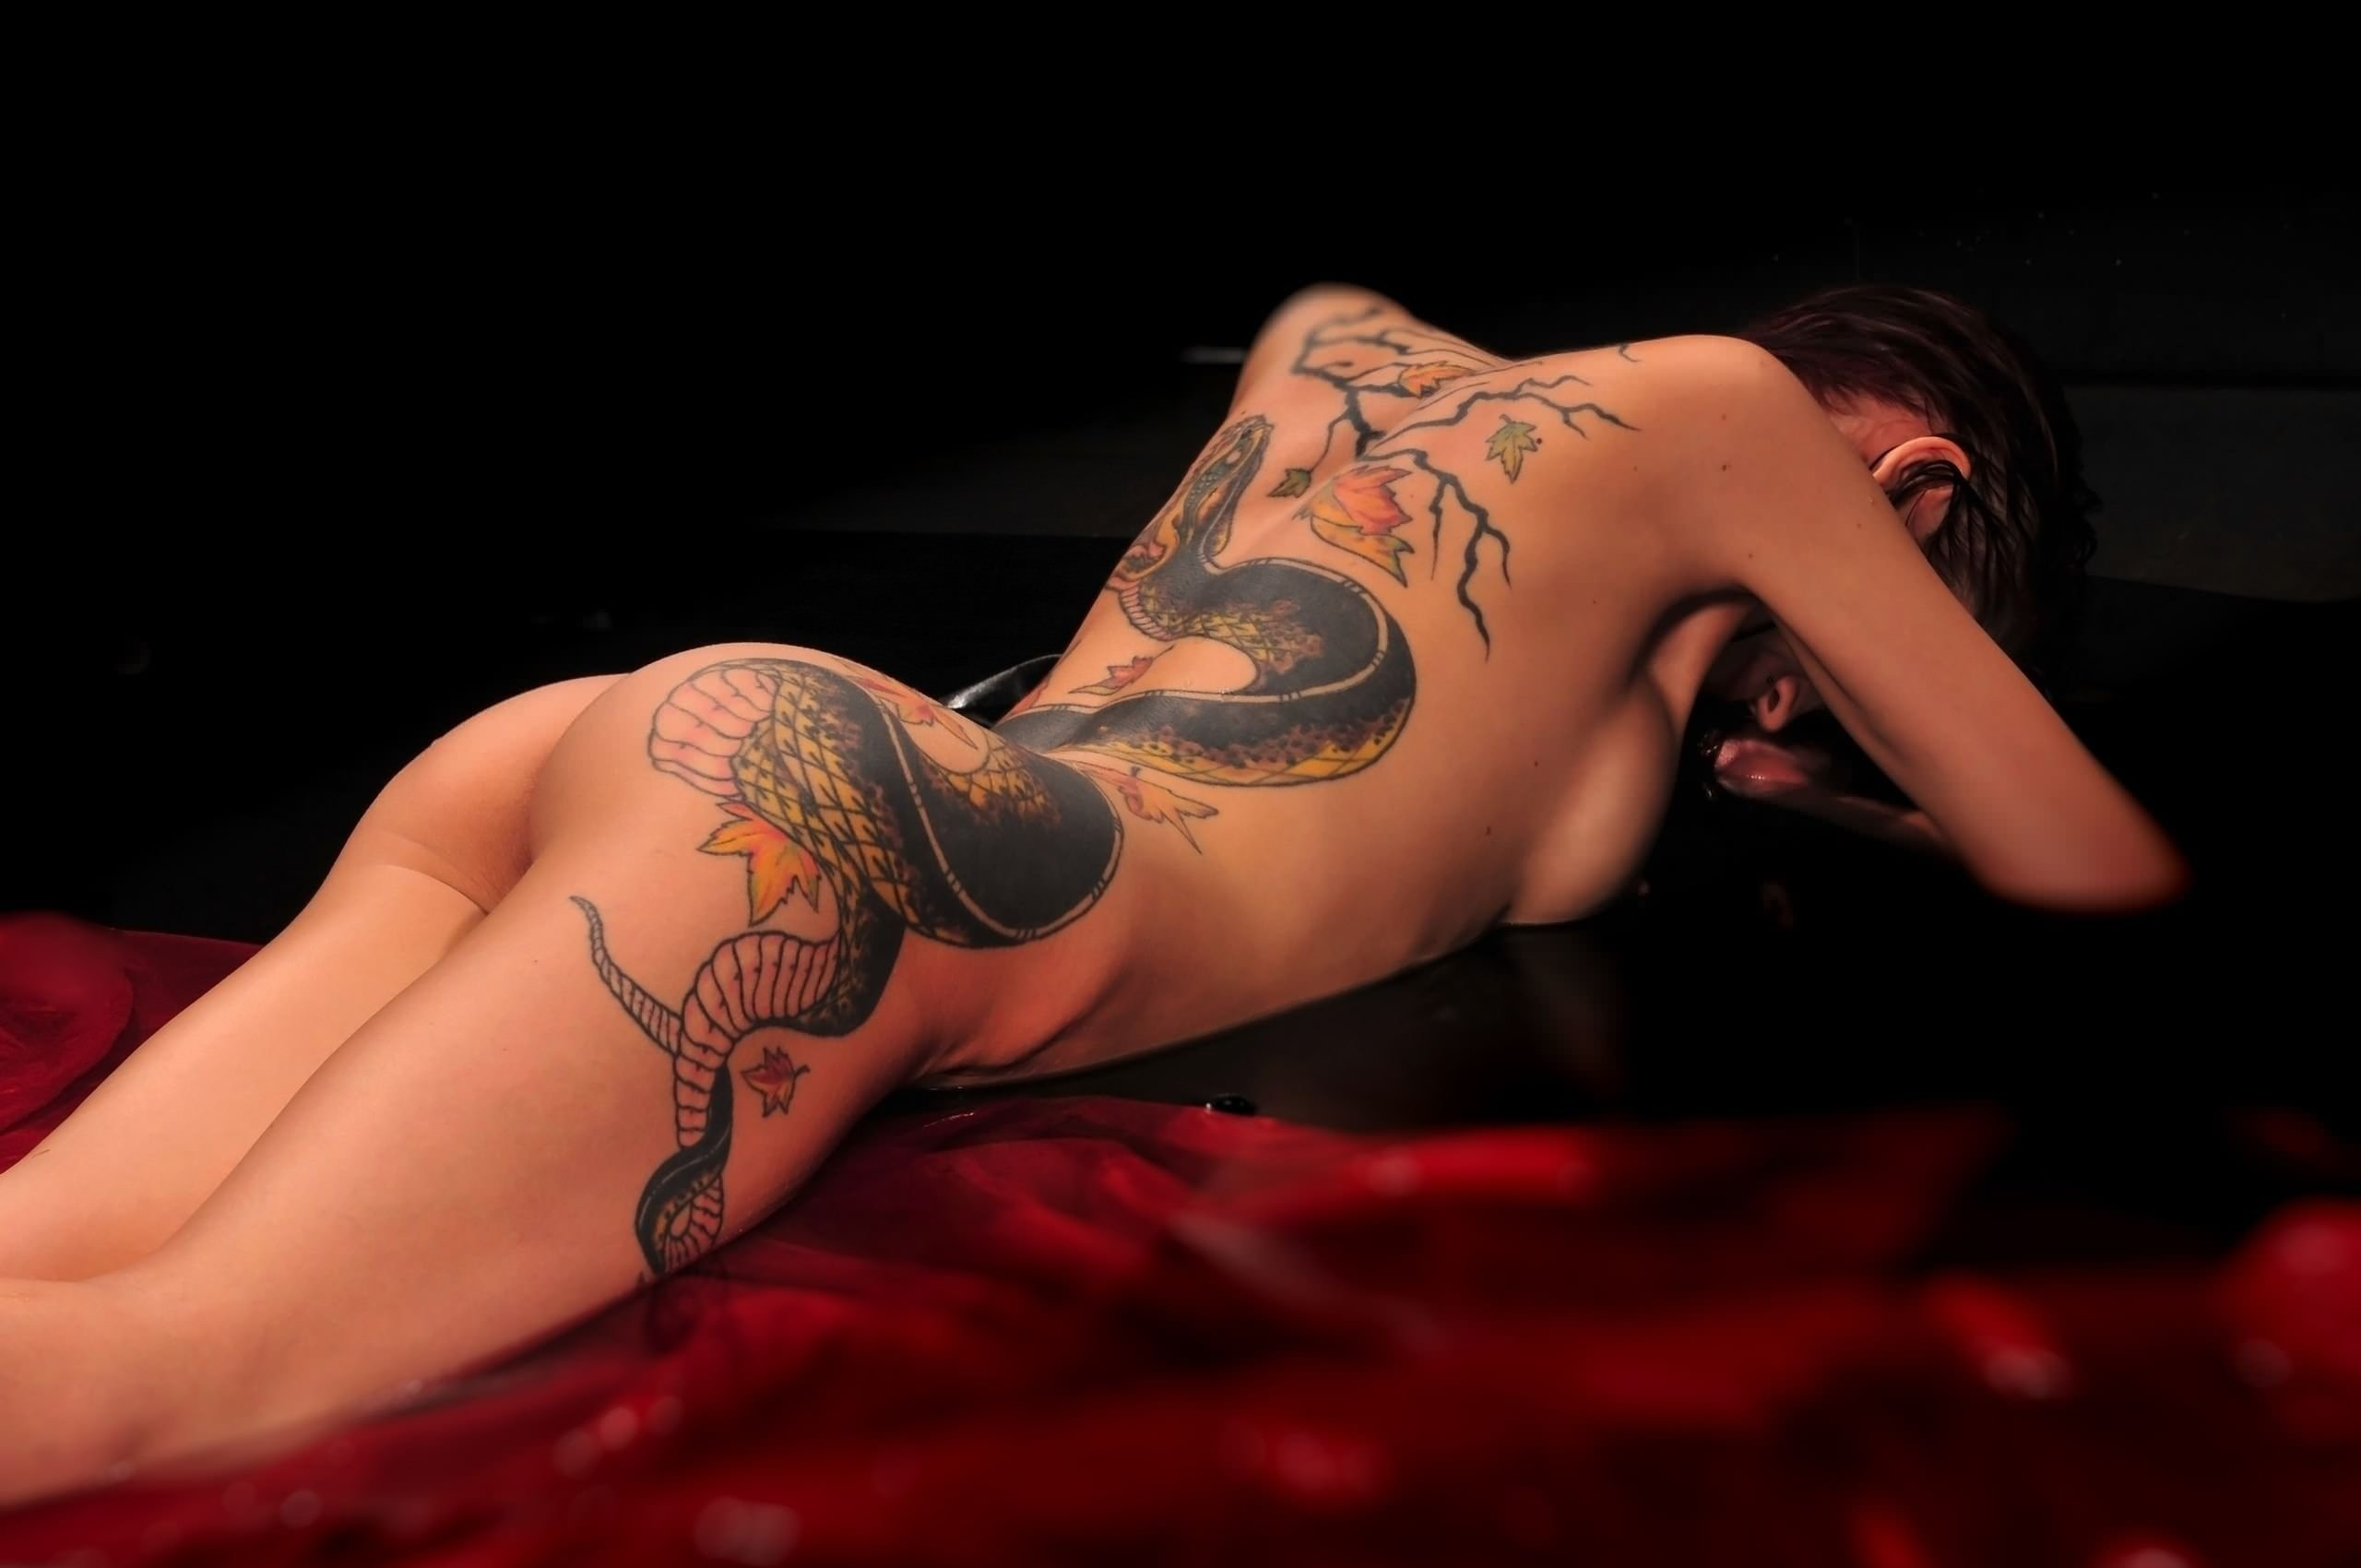 naked-woman-showing-tattoos-sexy-mude-girls